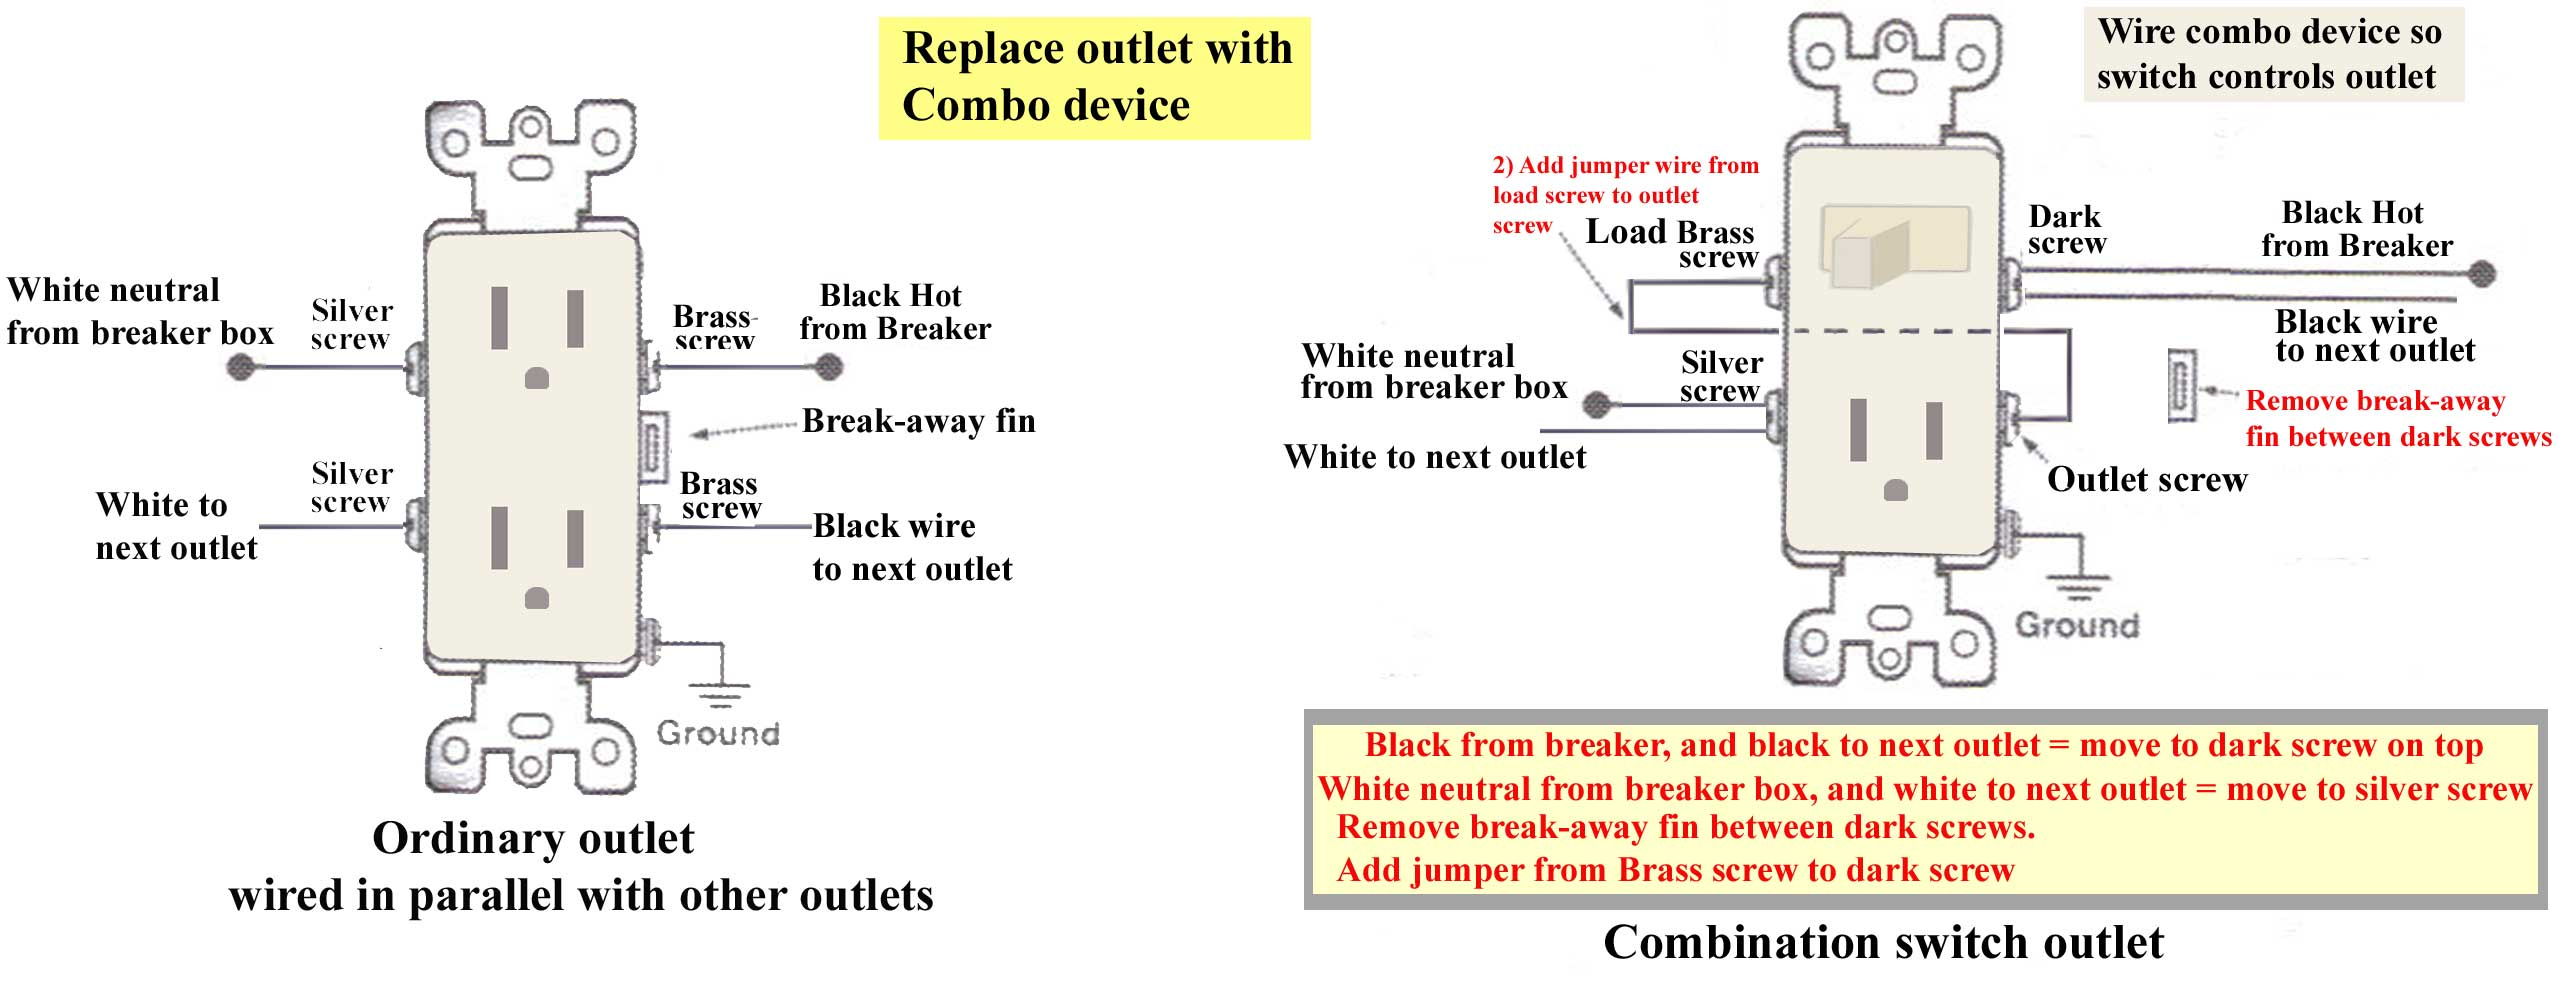 how to replace outlet combo switch 2 install combo device in place of ordinary outlet